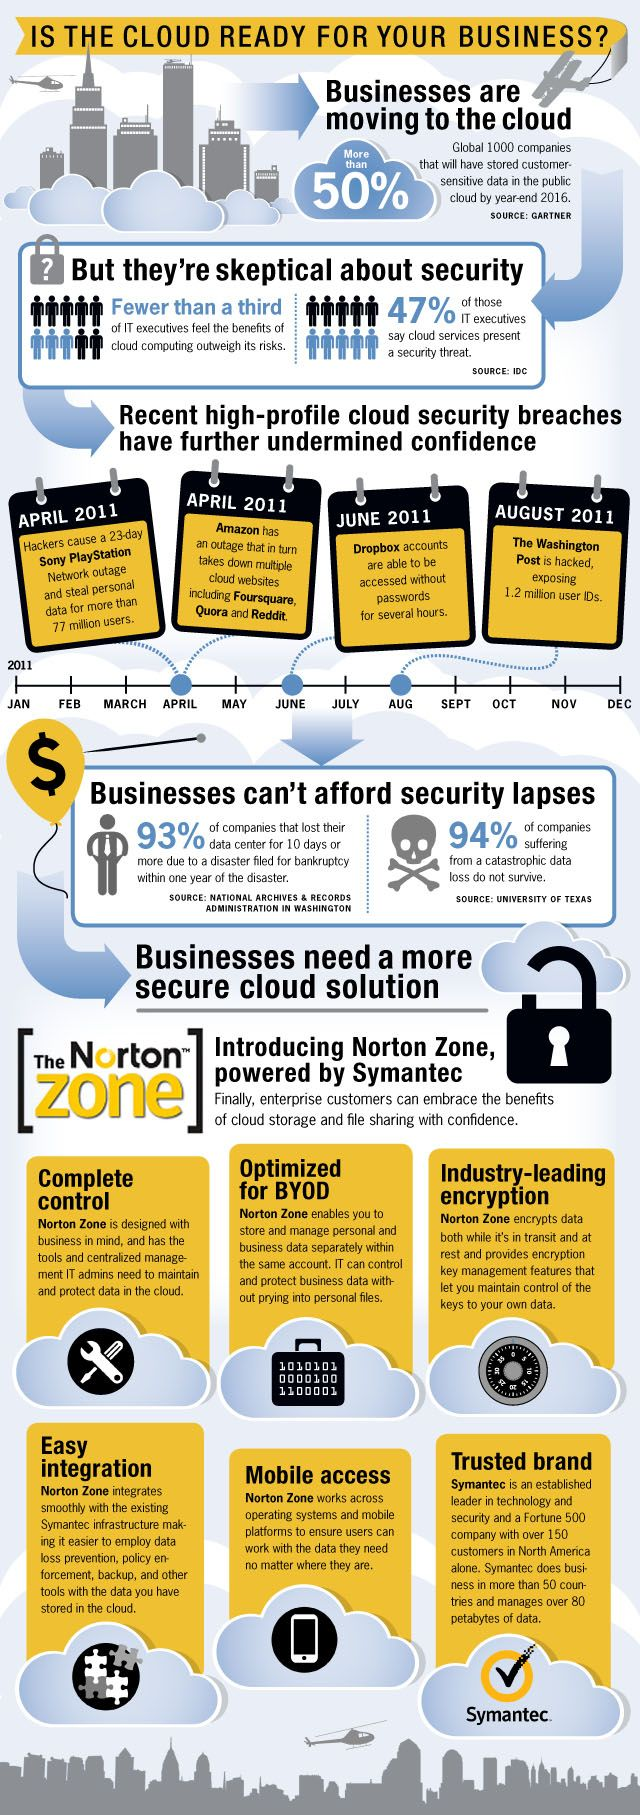 In the Cloud ready for business? [infographic]